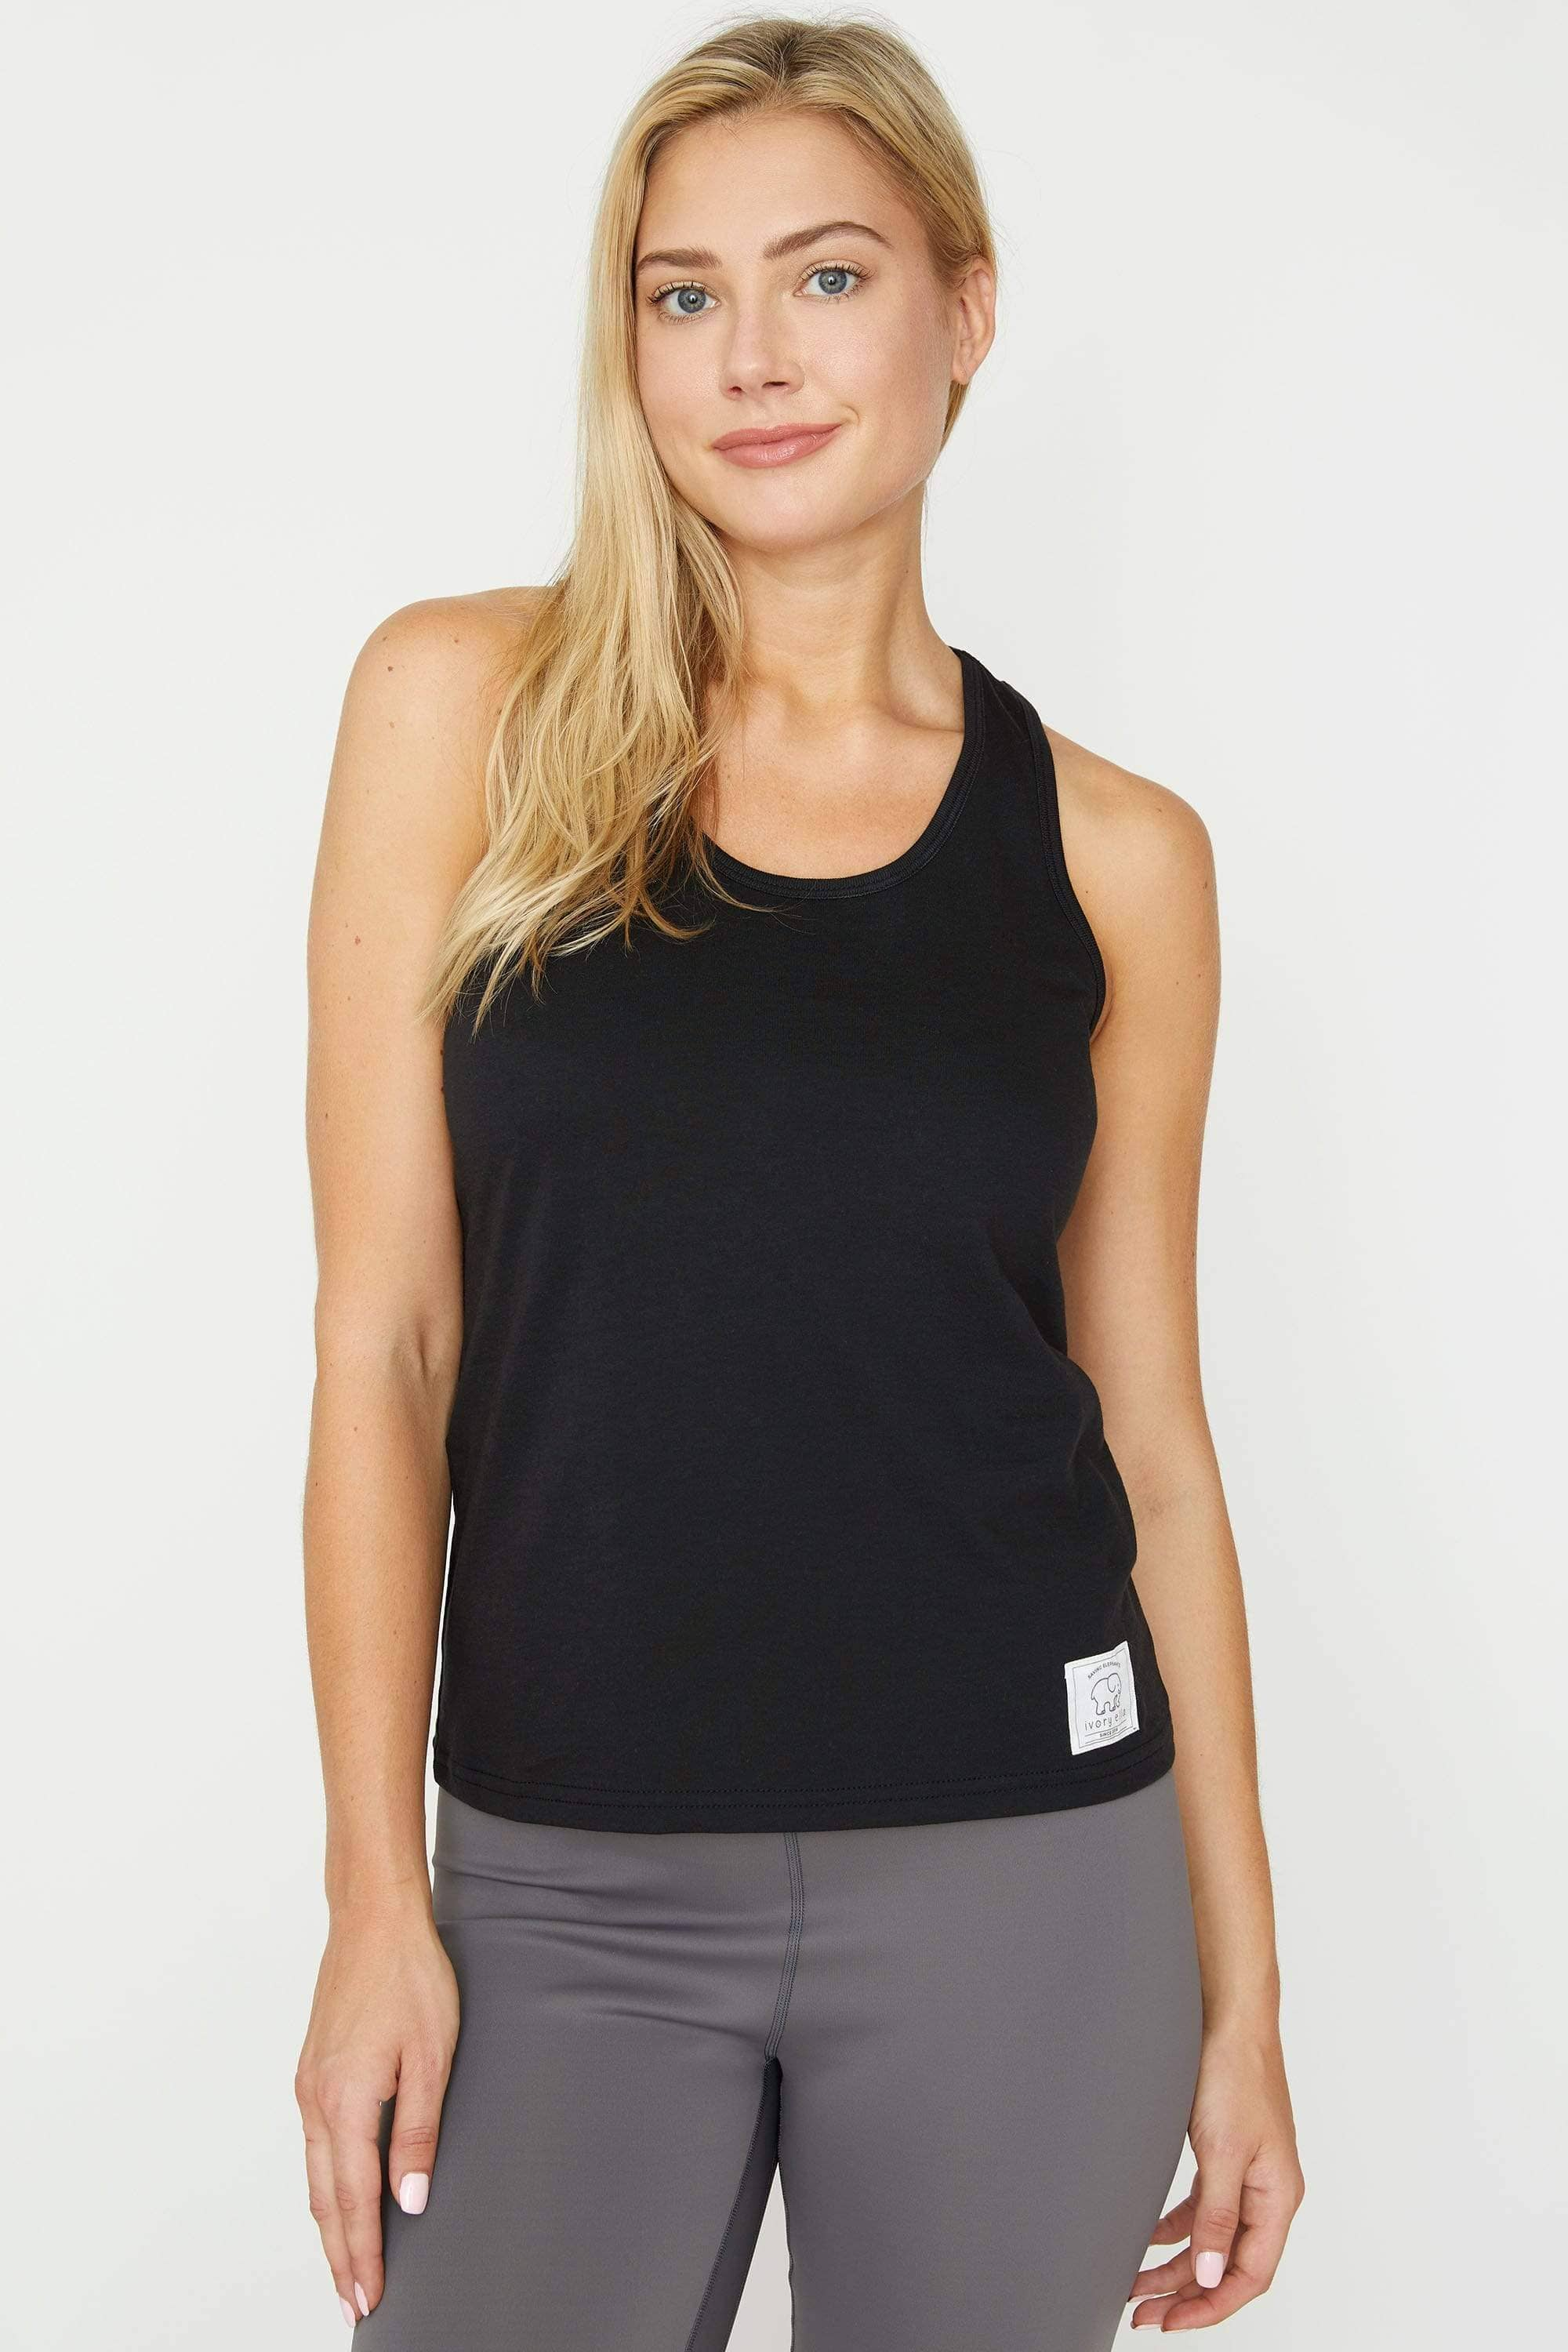 Black Essential Tank - Ivory Ella - Women's Tanks